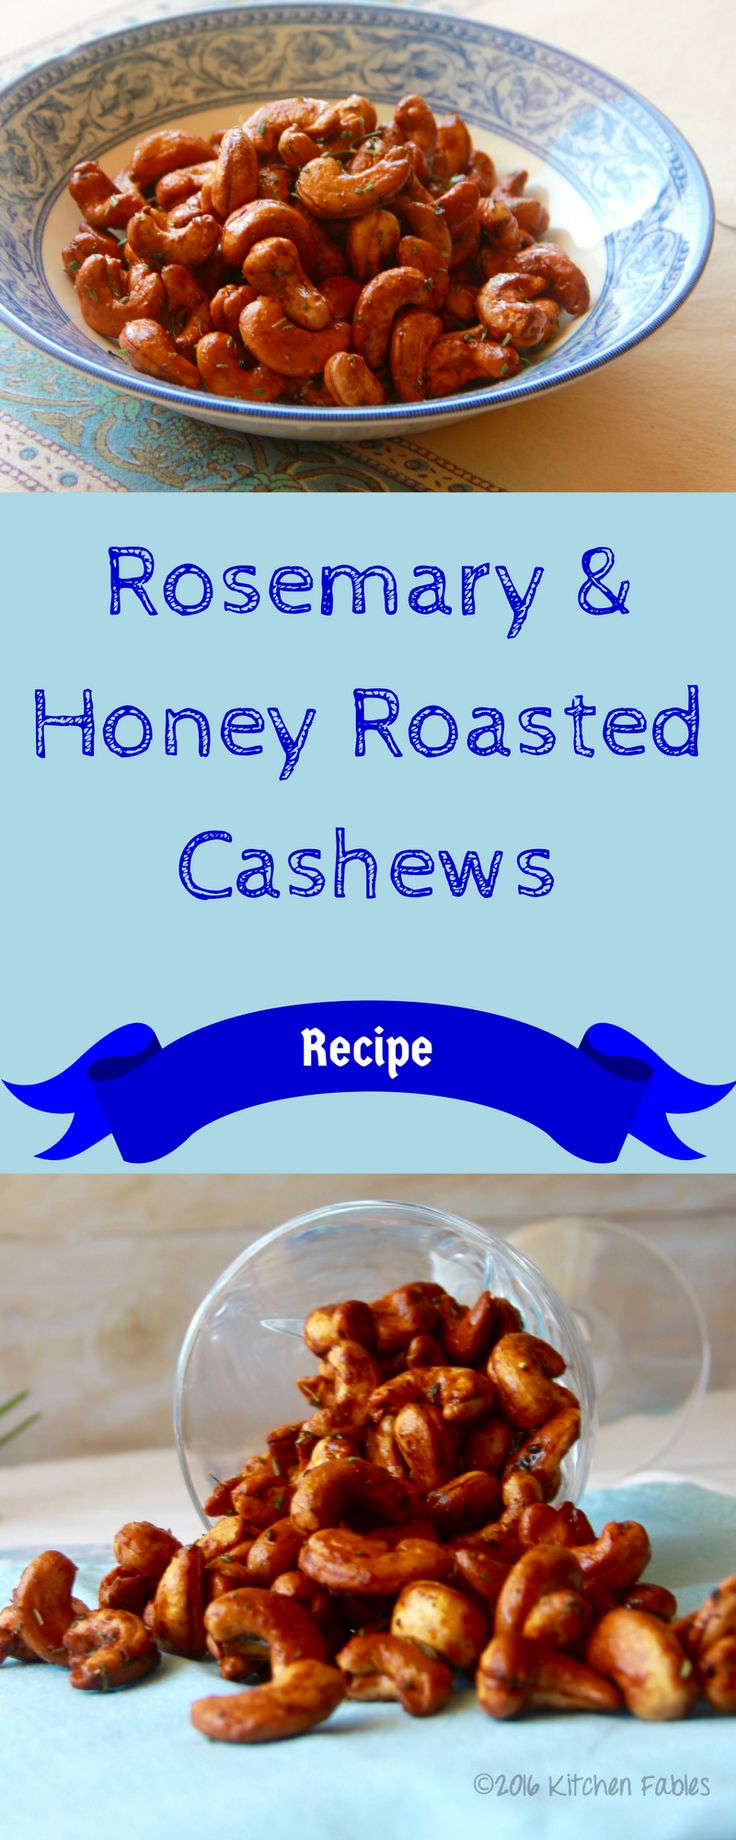 Rosemary & Honey Roasted Cashews Recipe for Rosemary & Honey Roasted Cashews.  Roasted nuts are a good option to serve or to gift  during festival season